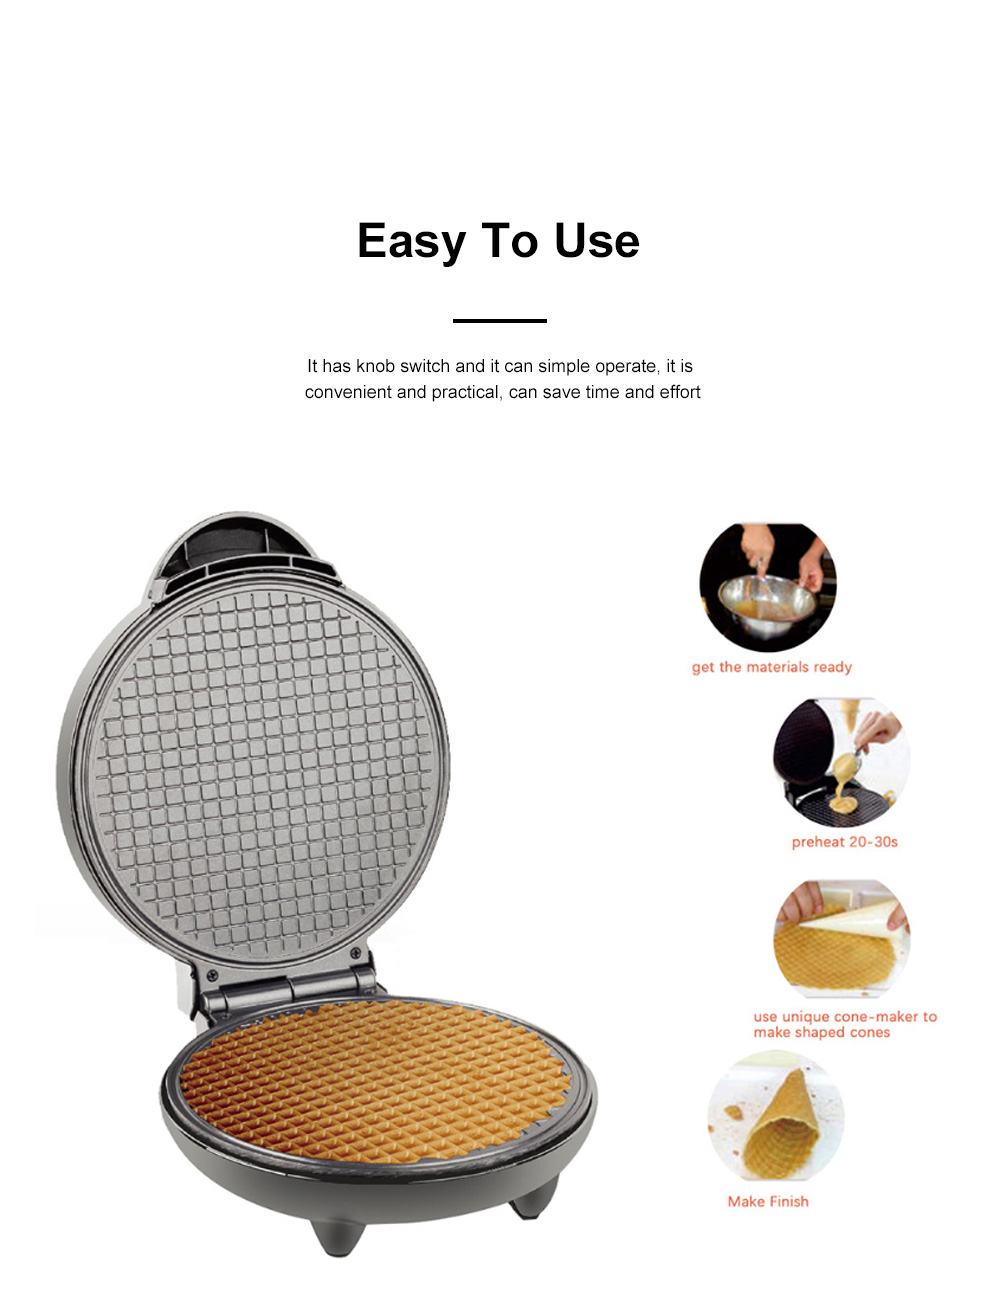 European-style Cone Crispy Egg Roll Machine Multifunctional Professional Round Ice Cream Waffle Cone Maker 1